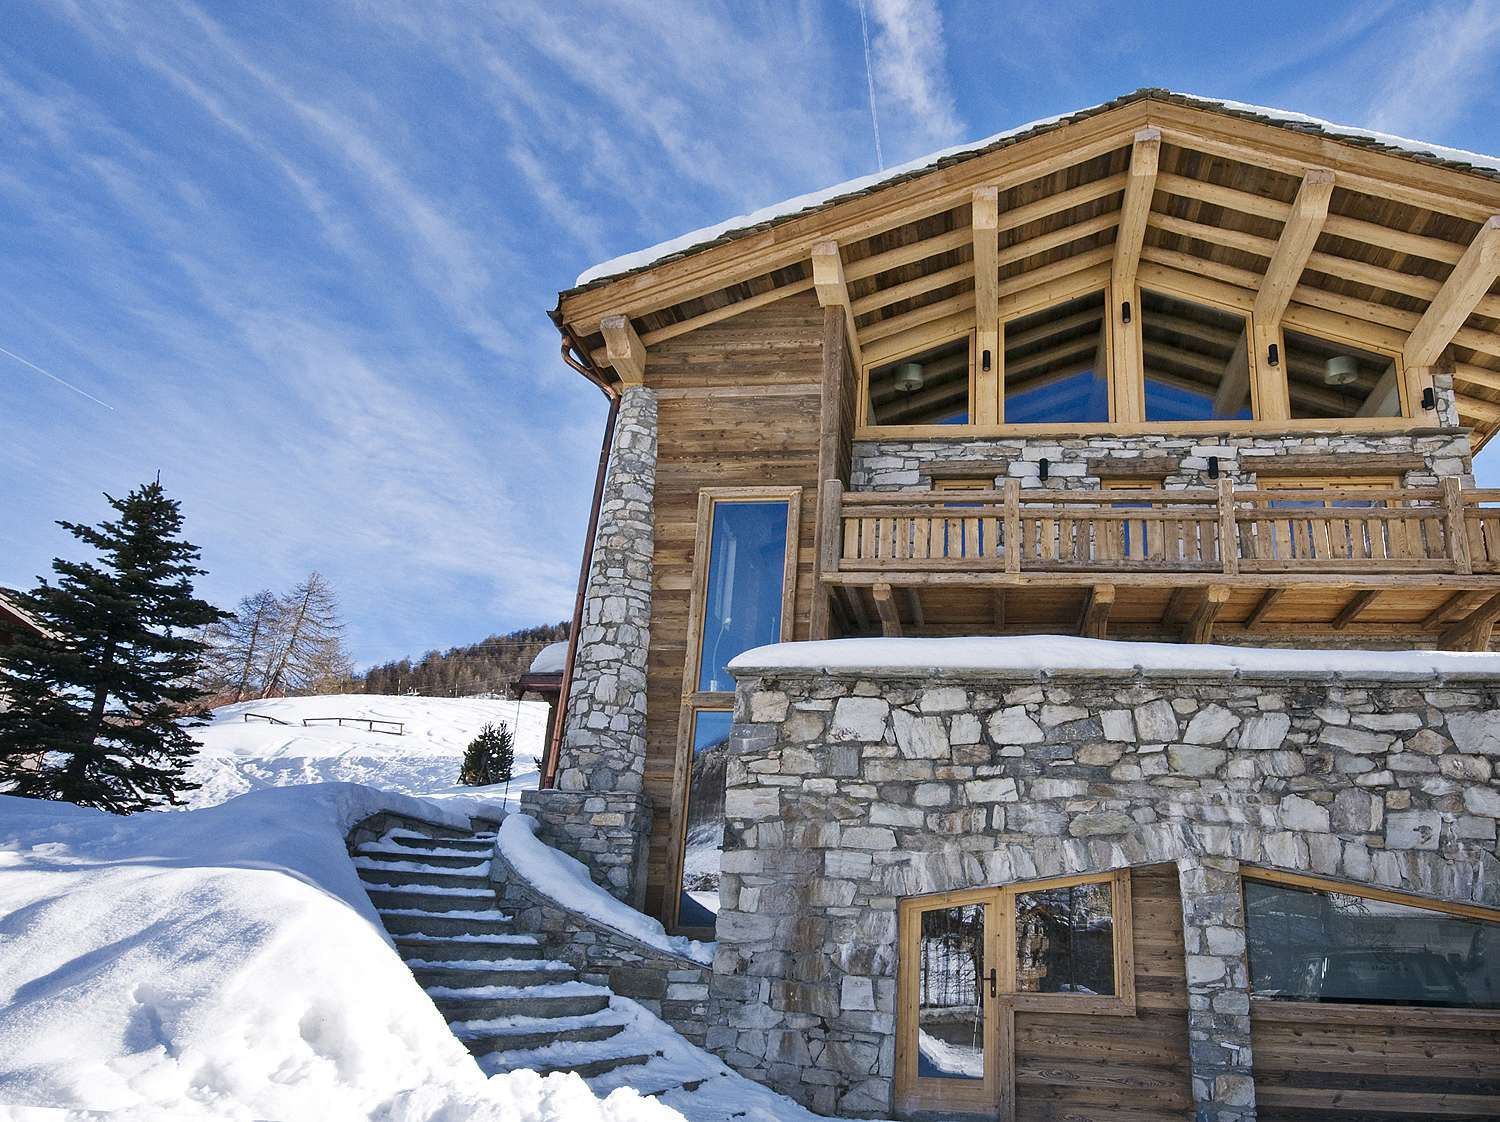 Kings-avenua-val-disere-snow-chalet-sauna-jacuzzi-hammam-childfriendly-parking-fireplace-ski-in-ski-out-wine-cellar-massage-room-area-val-disere-008-2